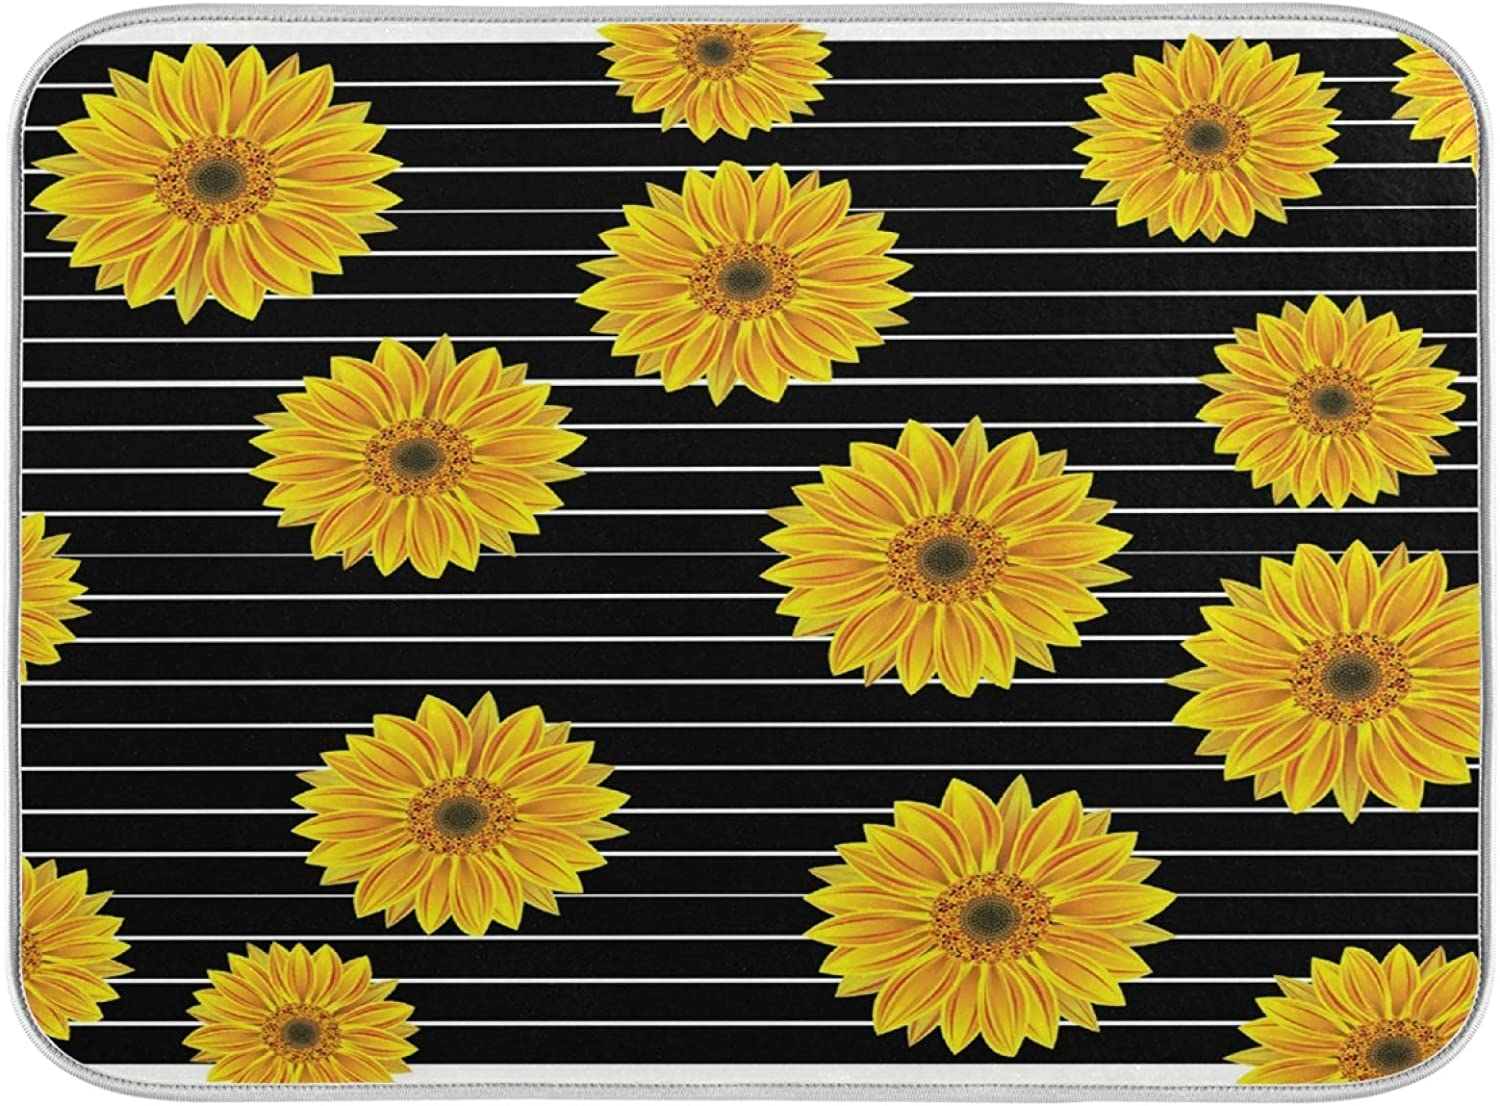 Dish Drainer Mat for Kitchen Counter Striped Dryi Over item handling Sunflower discount